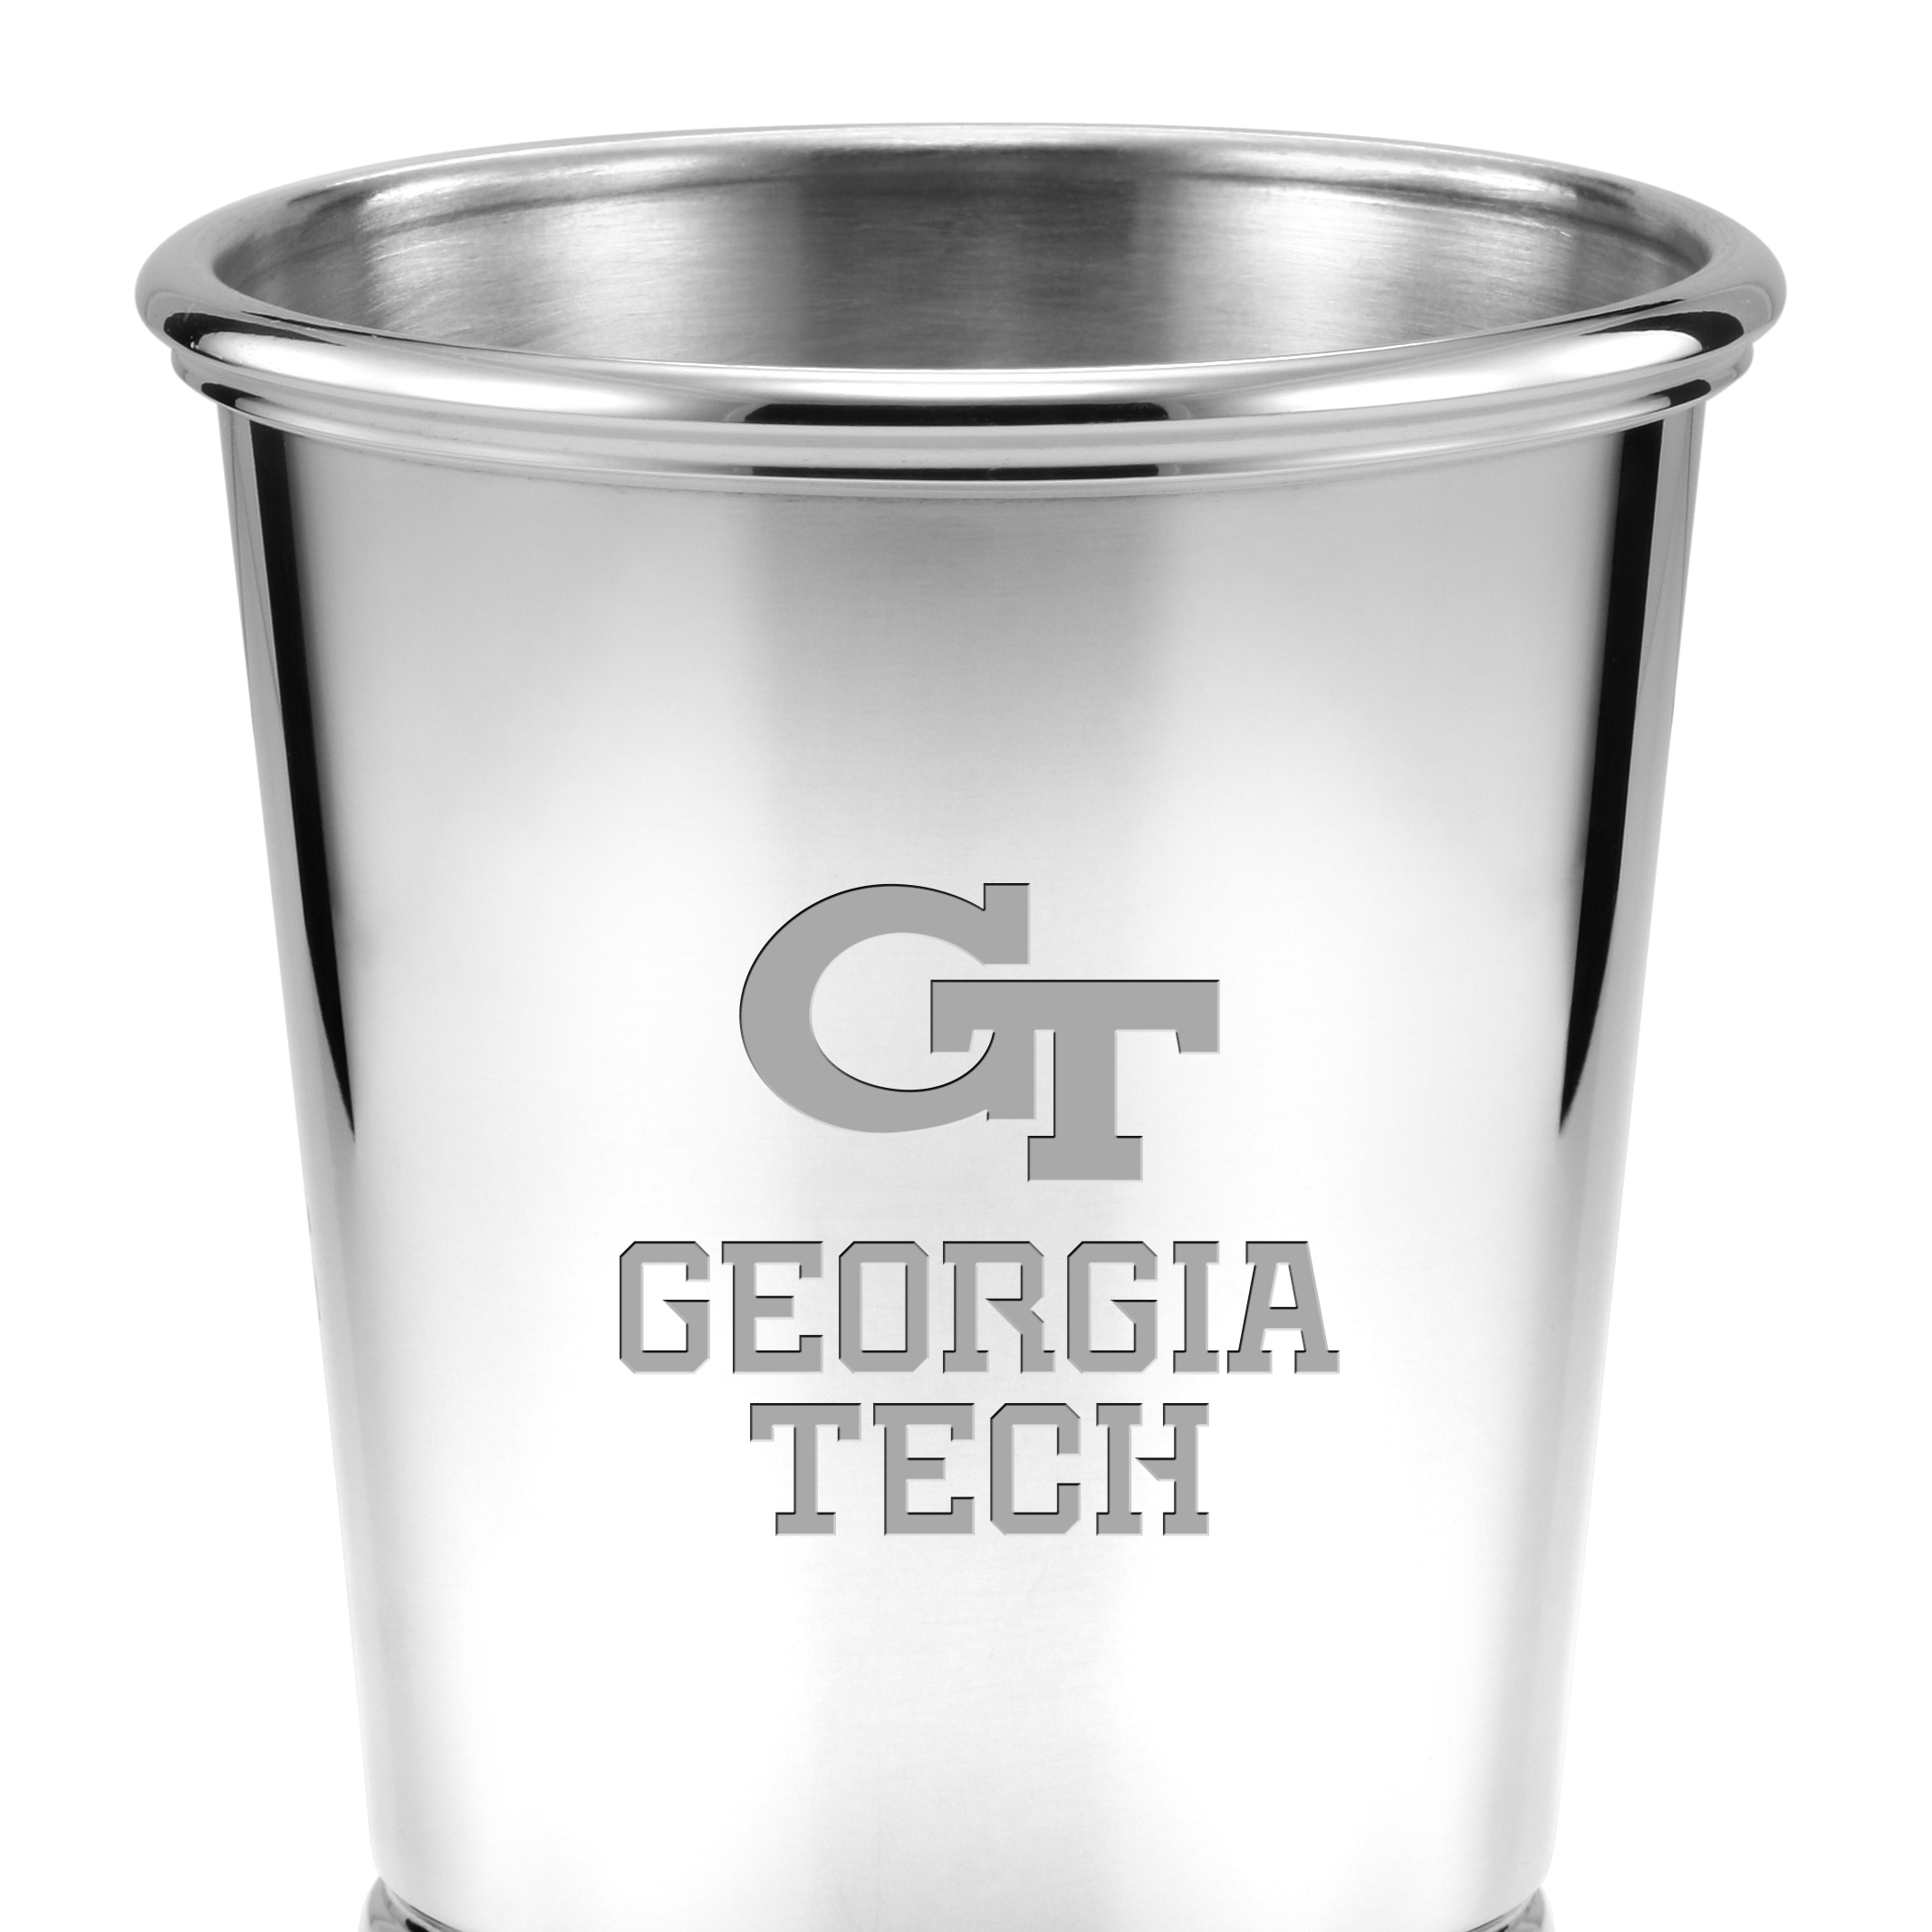 Georgia Tech Pewter Julep Cup Image-2